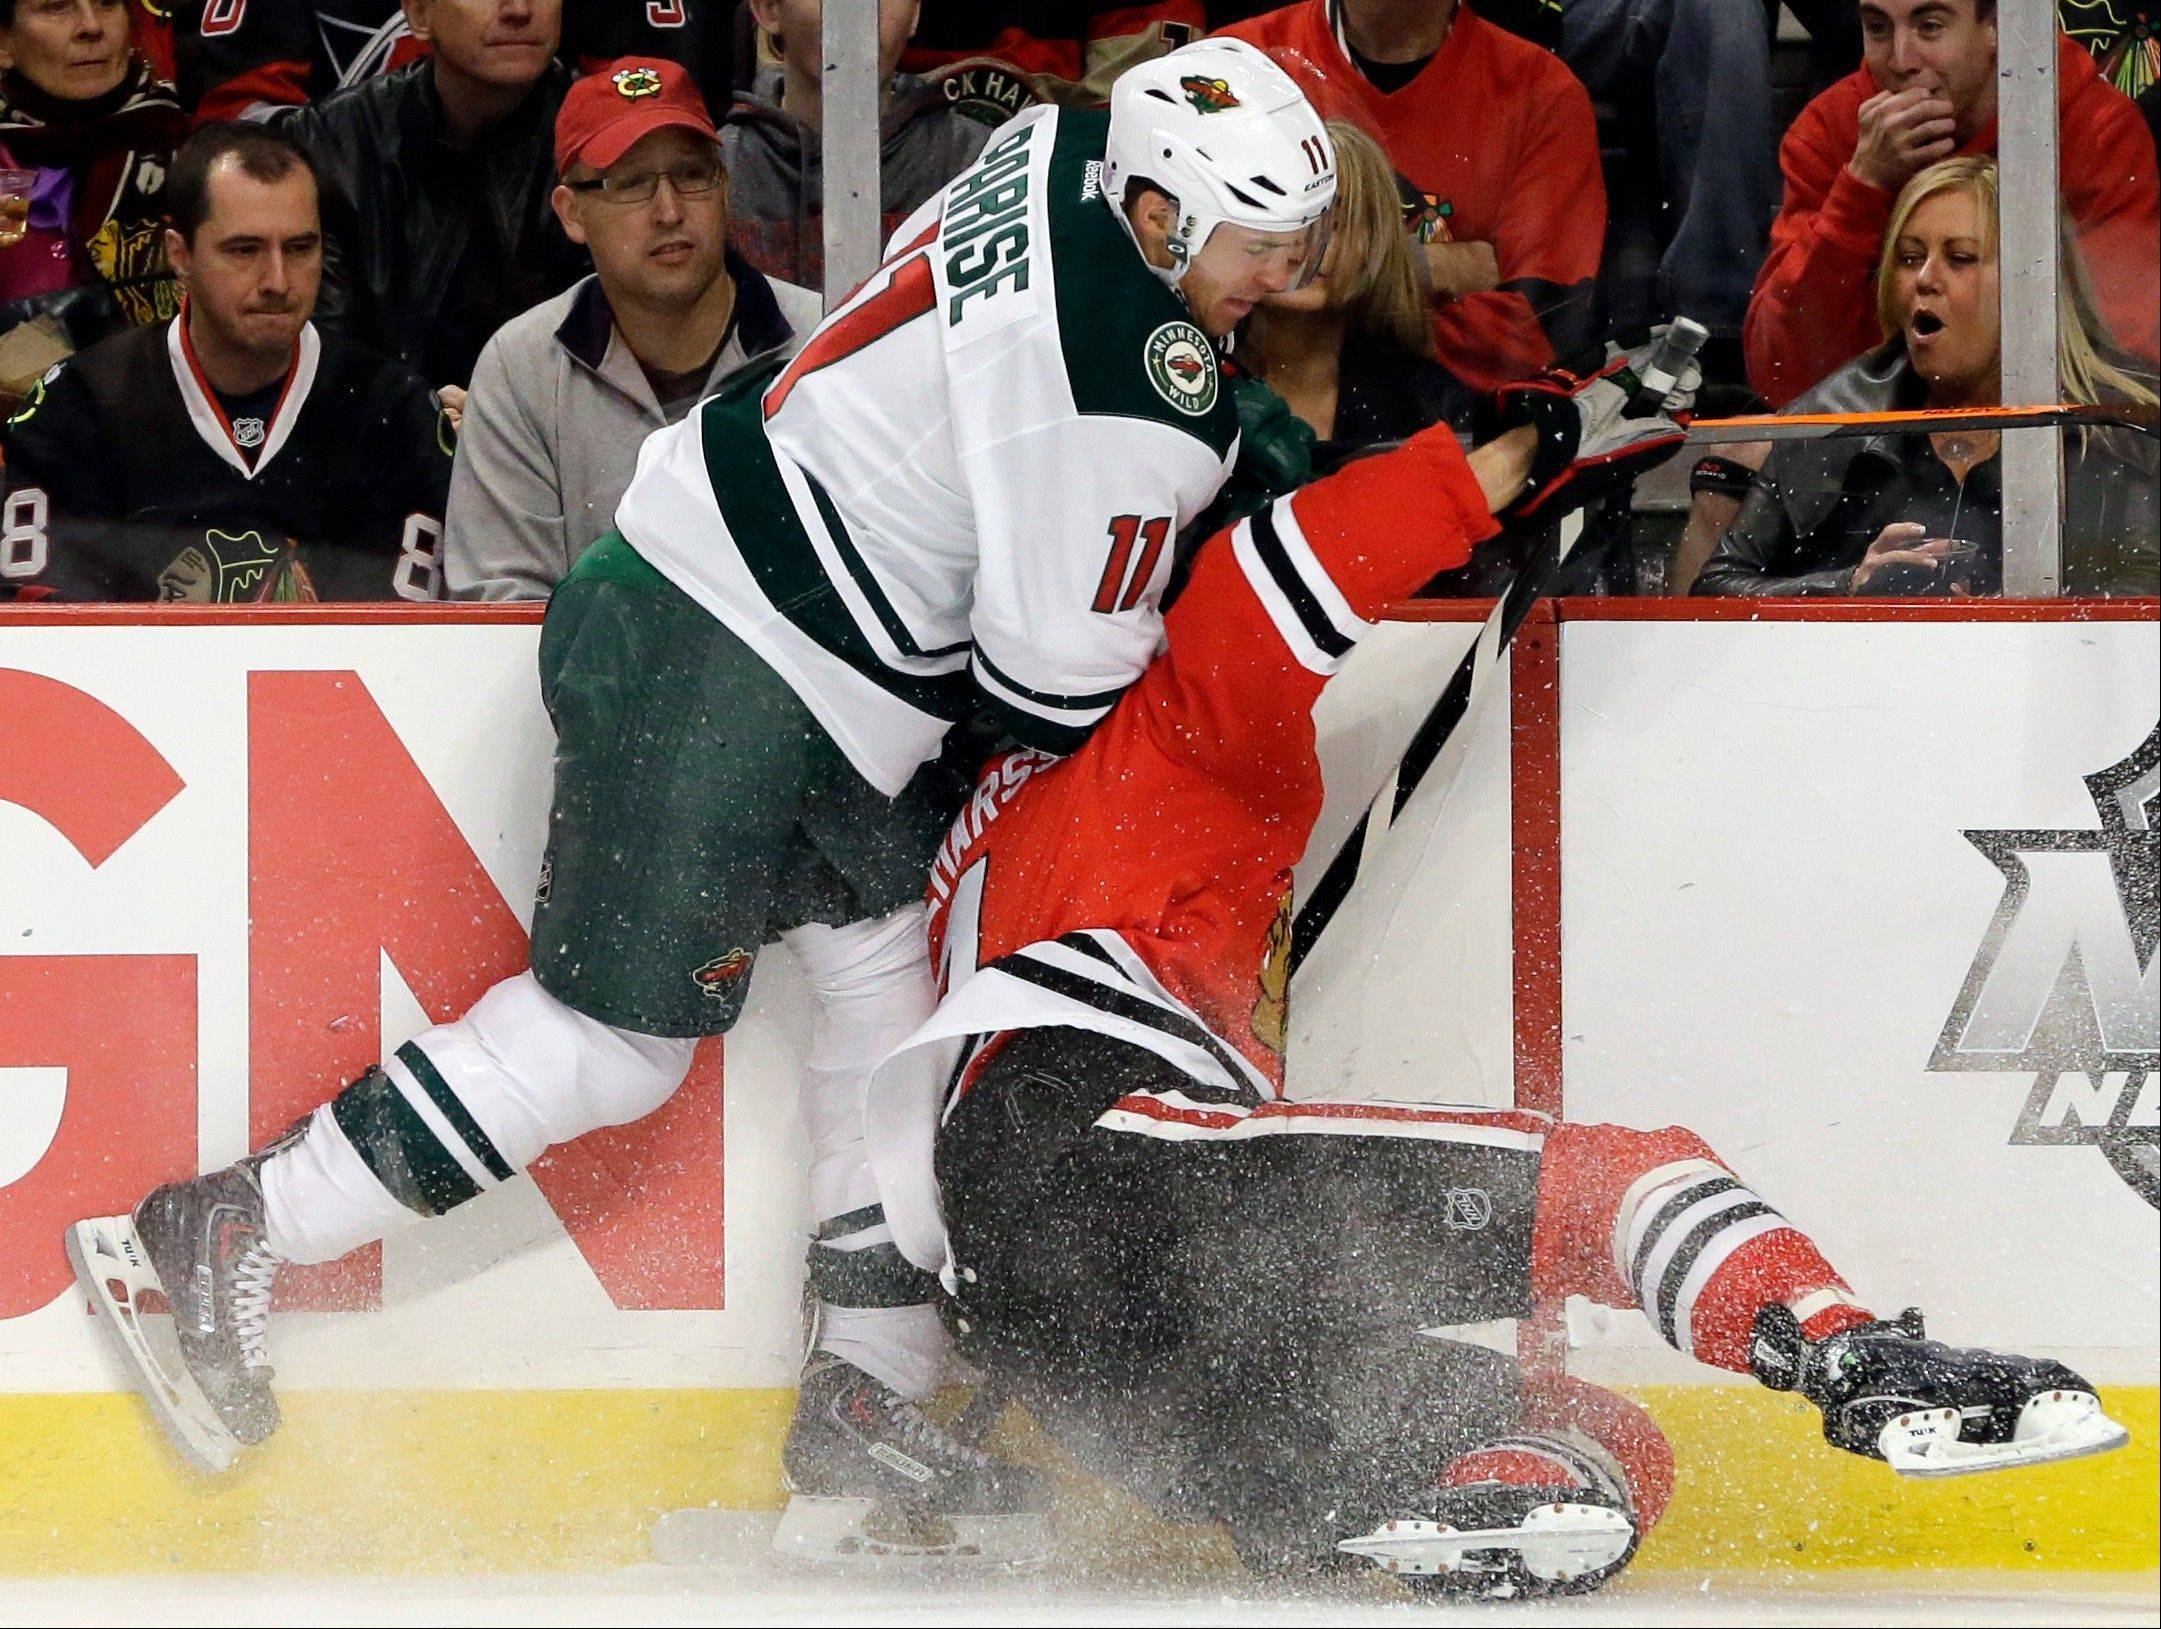 The Blackhawks' Niklas Hjalmarsson (4), right, is checked by Minnesota Wild's Zach Parise (11) during the first period.